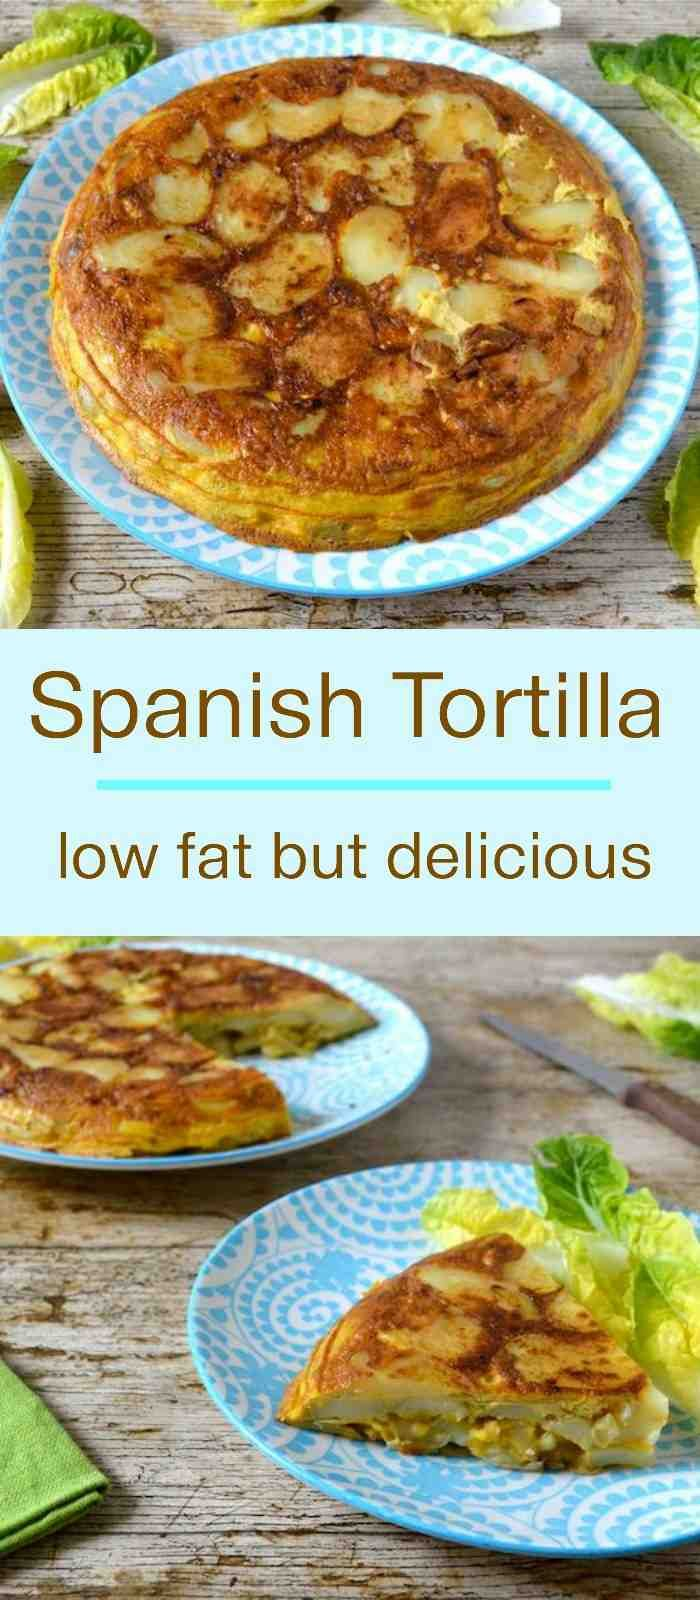 Easy Spanish Tortilla recipe. Delicious but with only half the fat.